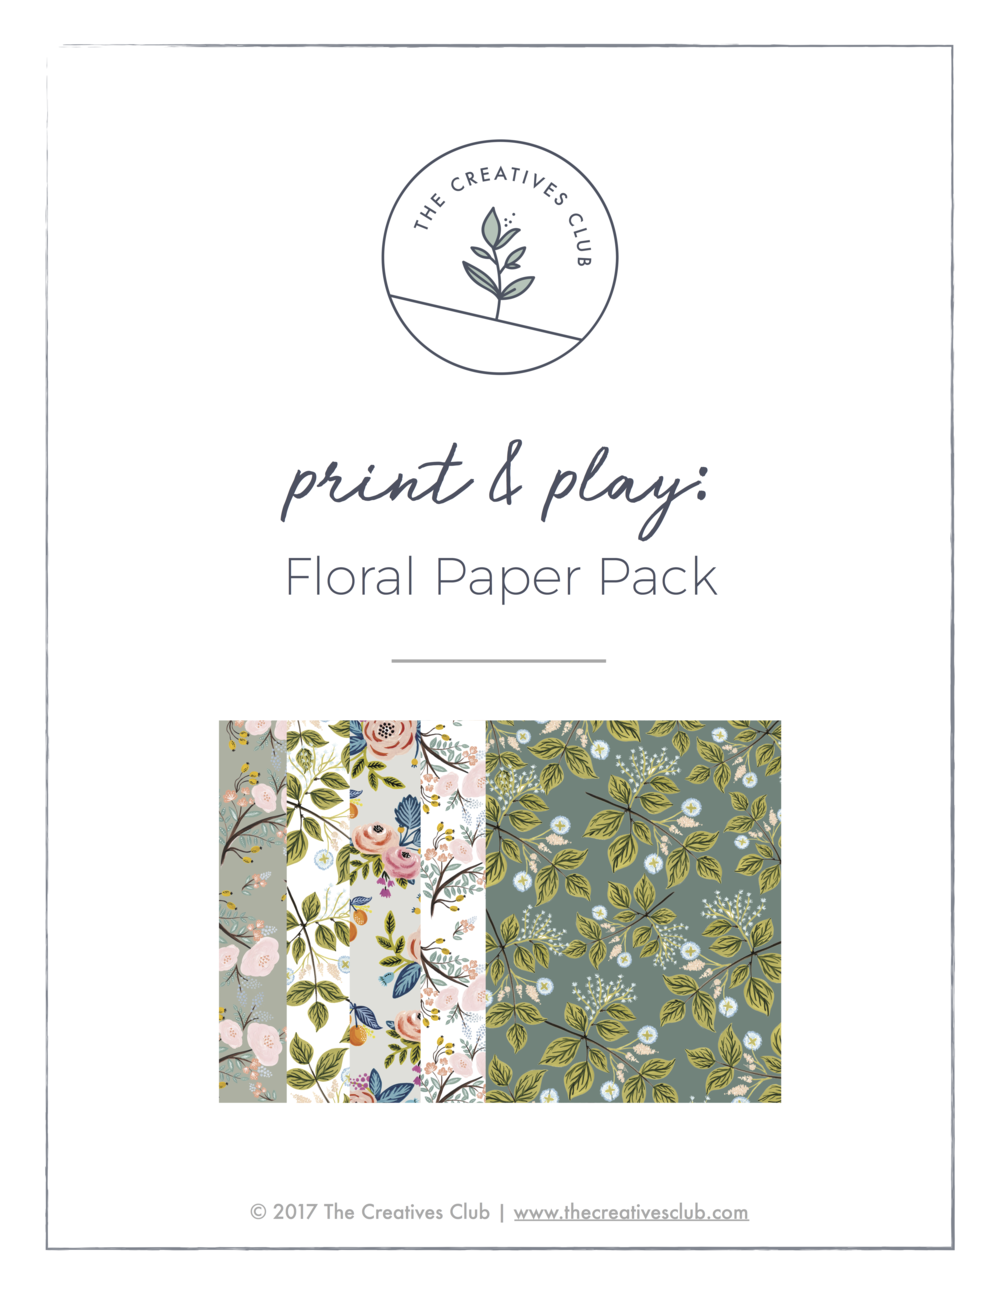 Floral Paper Pack Thumbnail.png